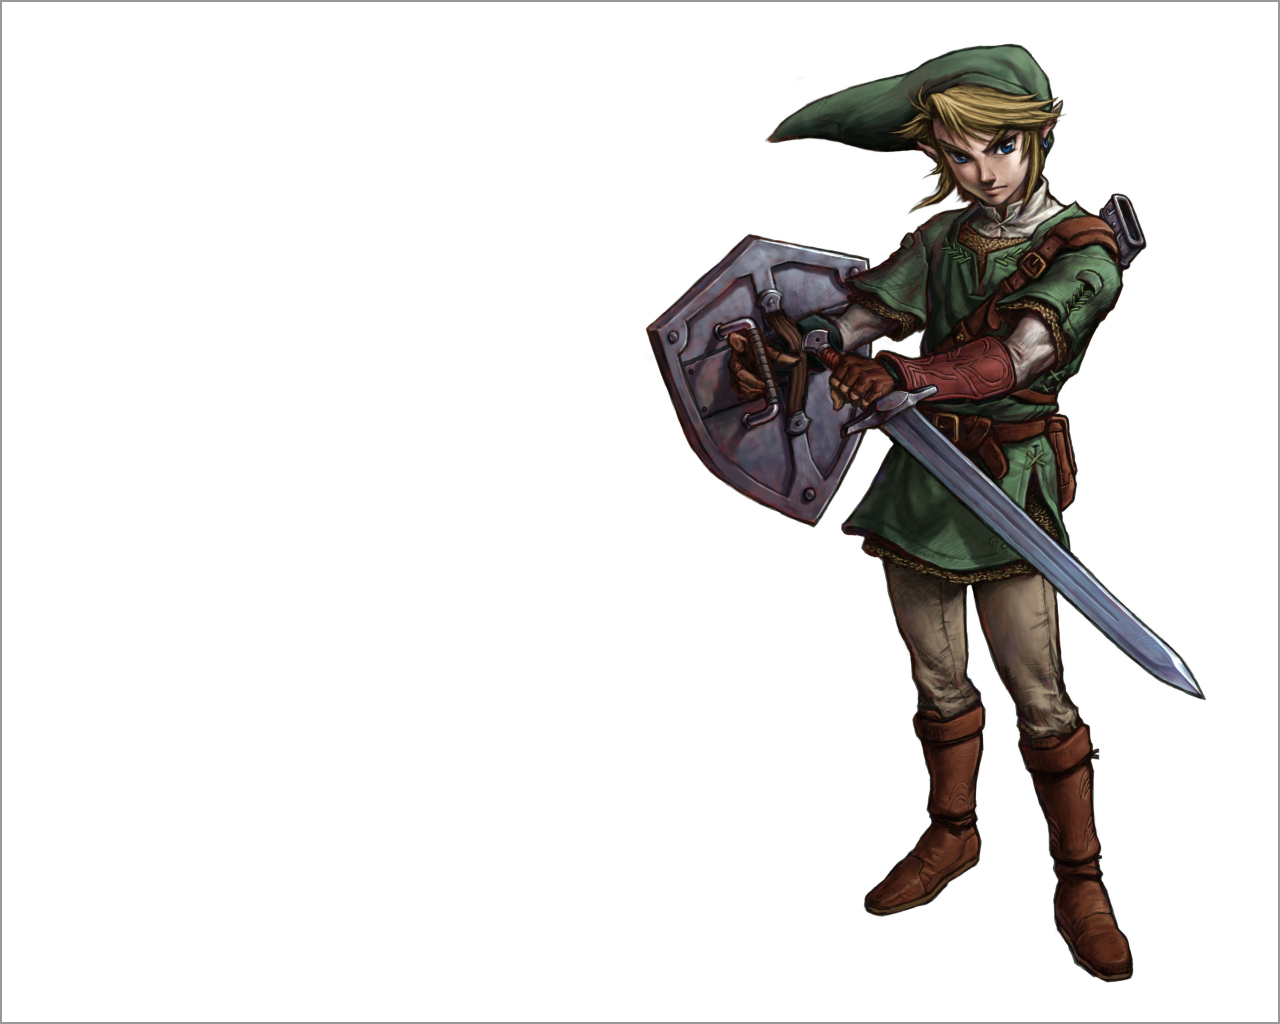 Link Zelda wallpaper